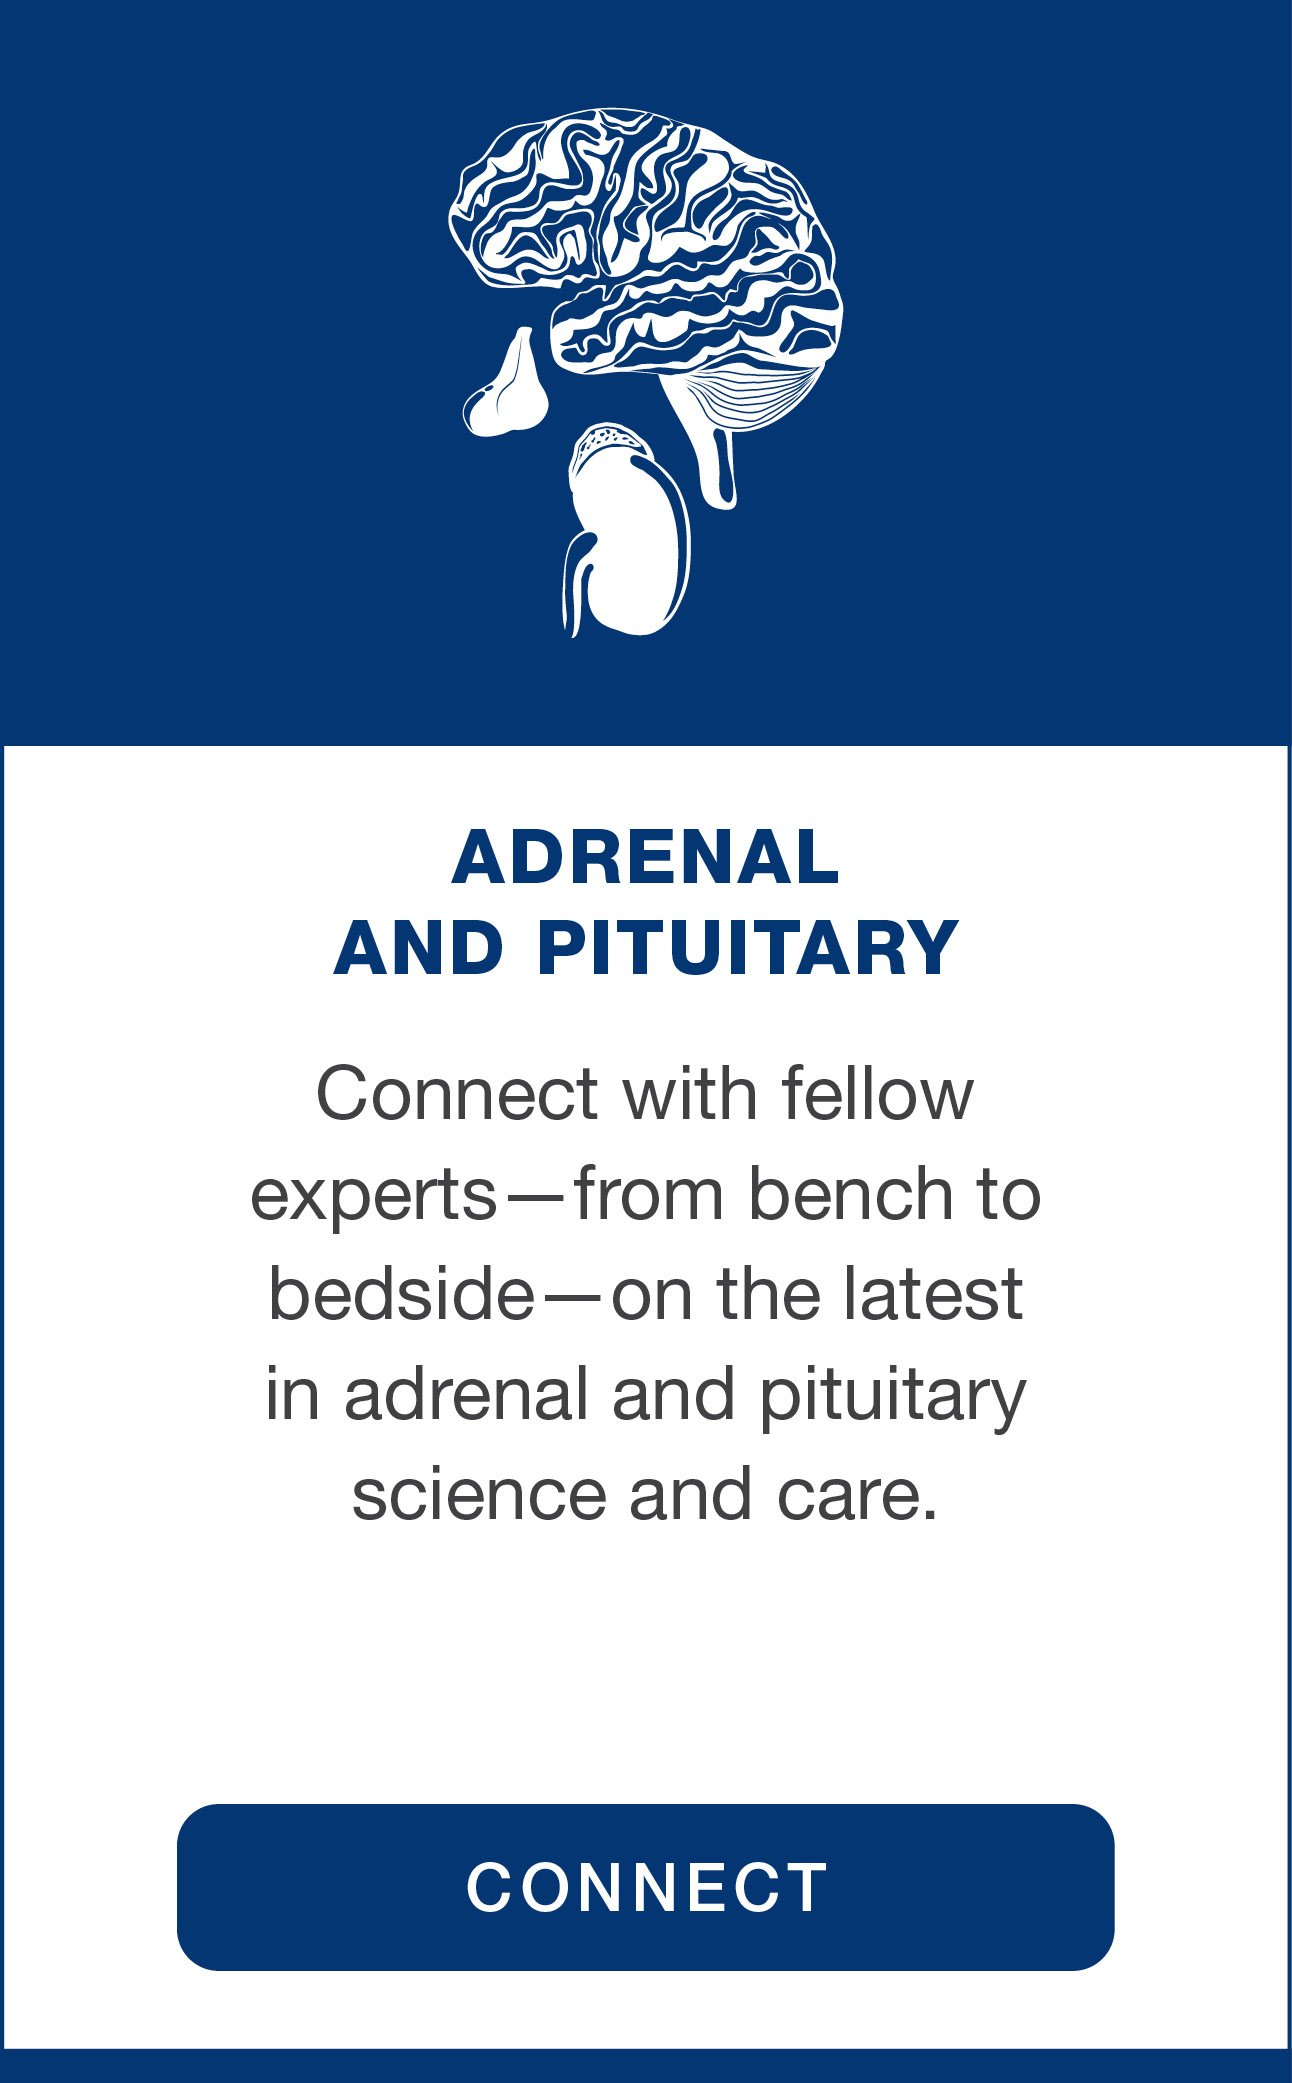 Special Interest Group: Adrenal & Pituitary